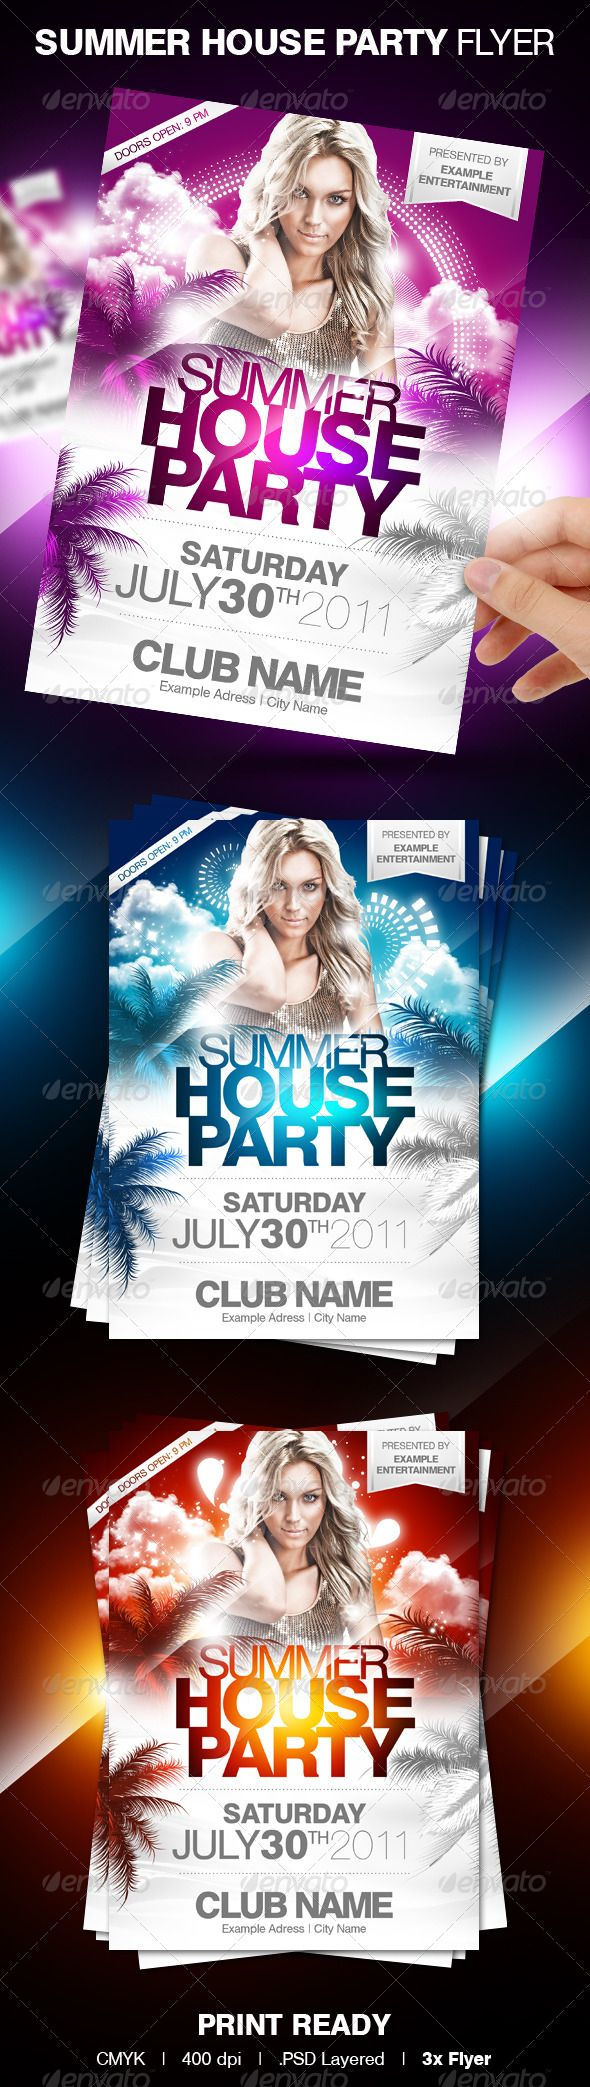 best images about flyer design nightclub party summer house party flyer